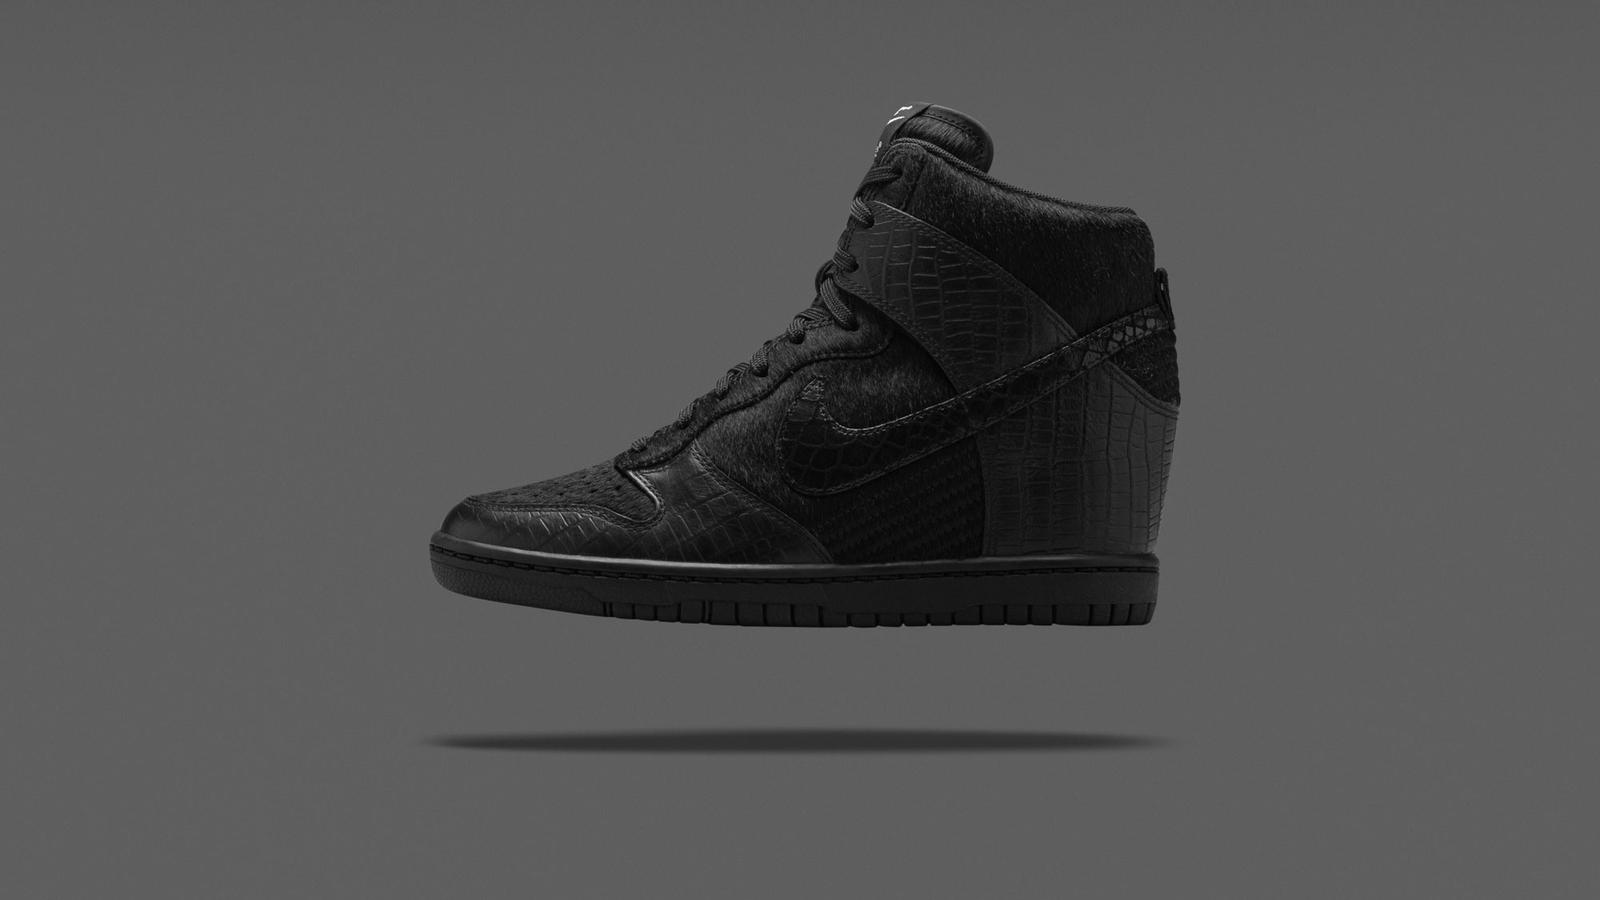 Nike x UNDERCOVER Dunk Sky Hi Collection - Nike News